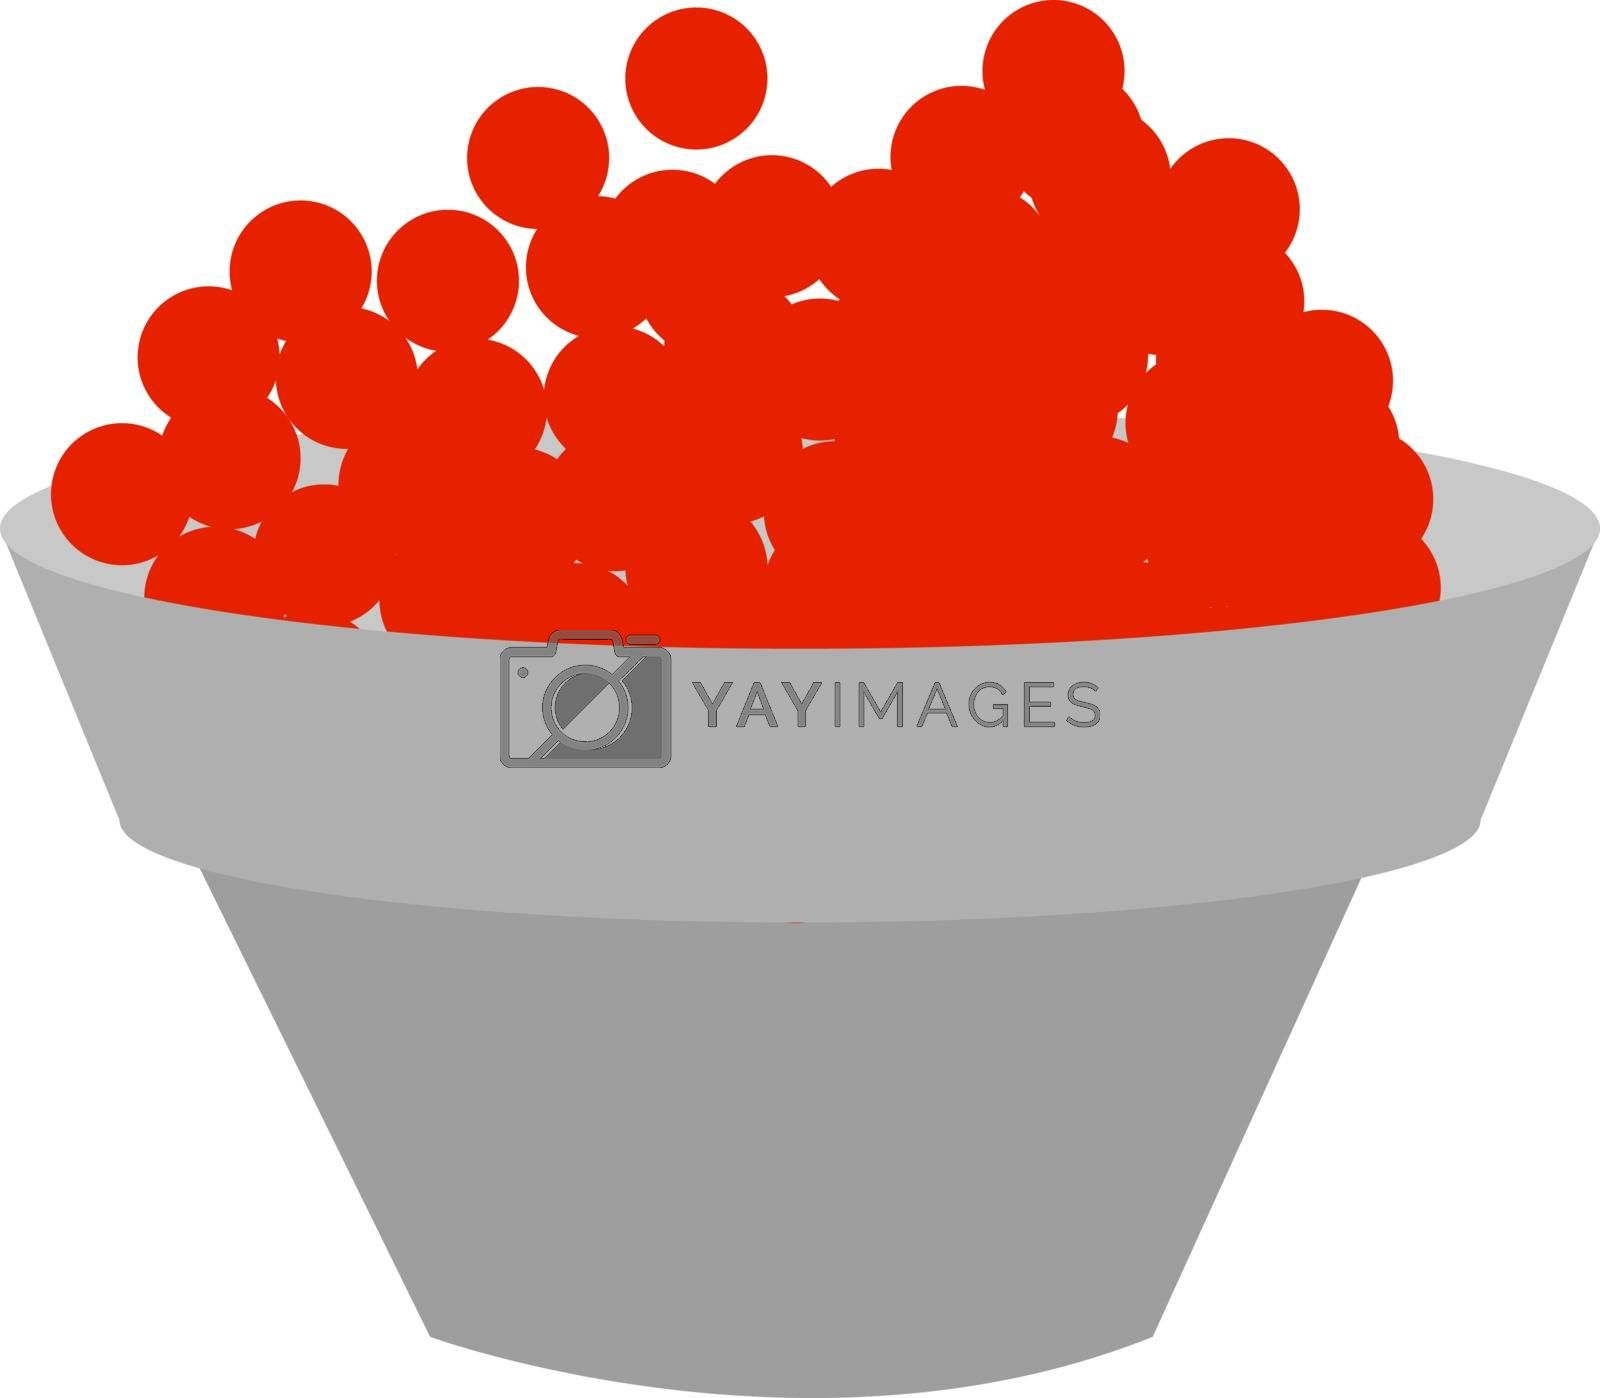 Red caviar, illustration, vector on white background.